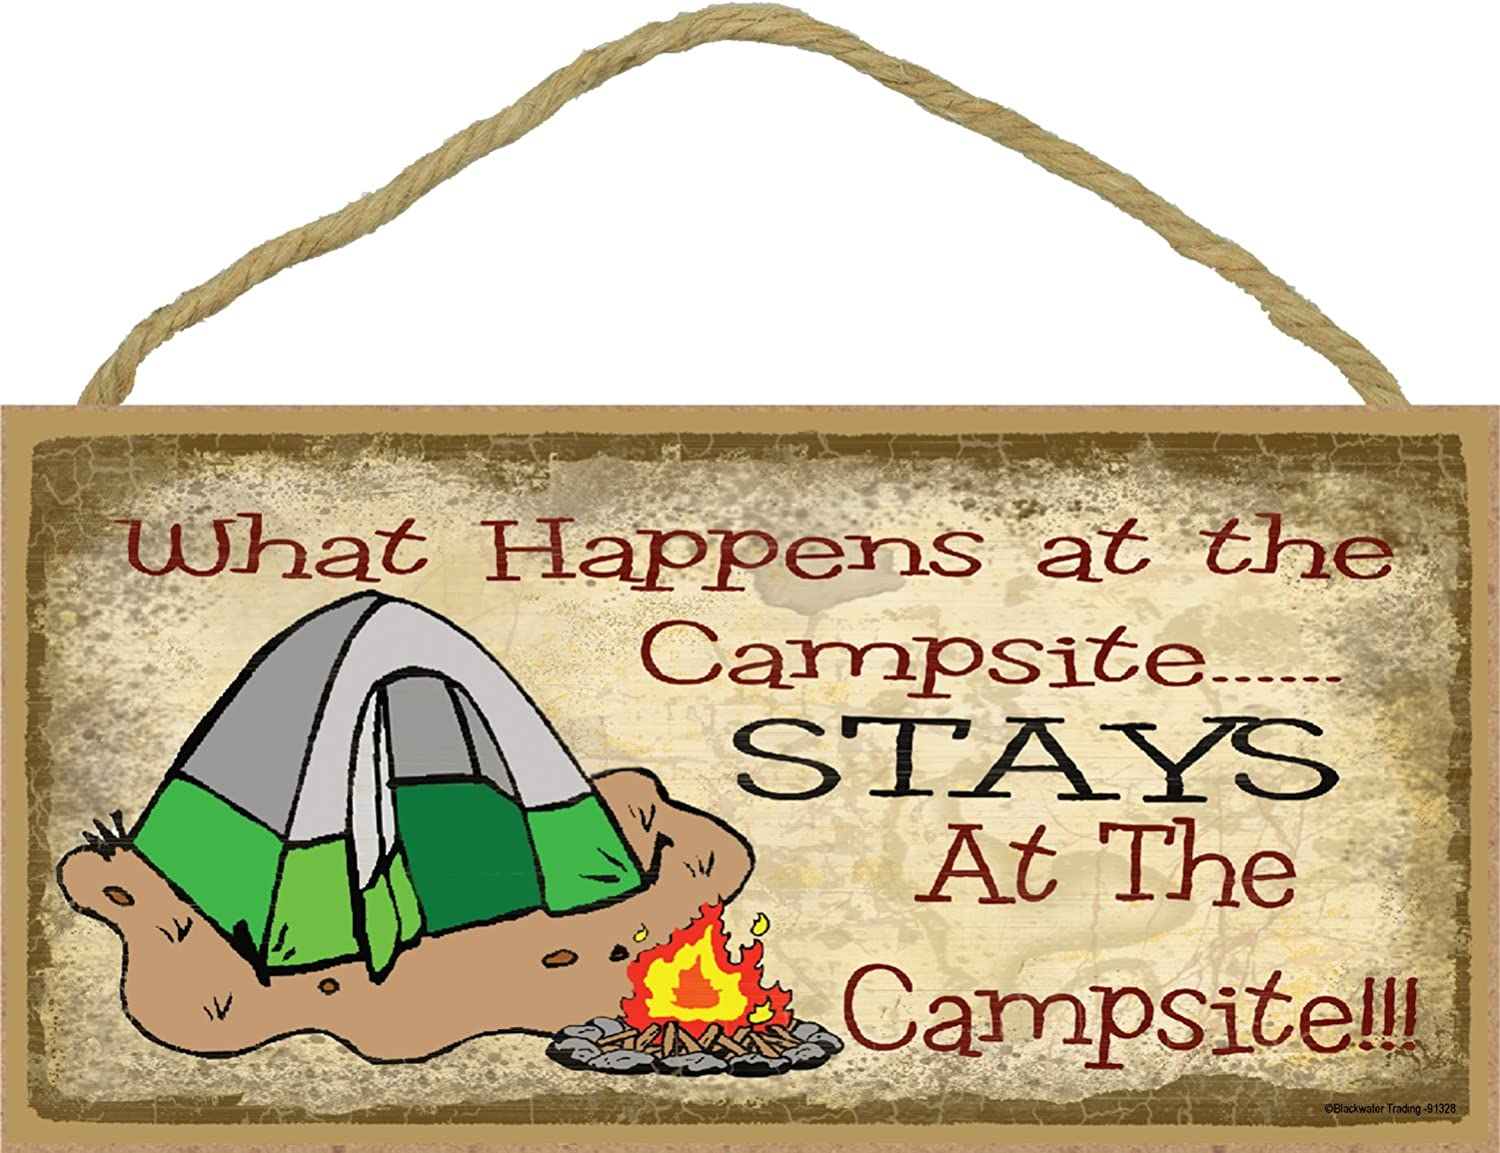 What Happens At the Campsite Stays At the Campsite Tent Camp Sign Plaque Camping Decor 5x10 SJT 91328